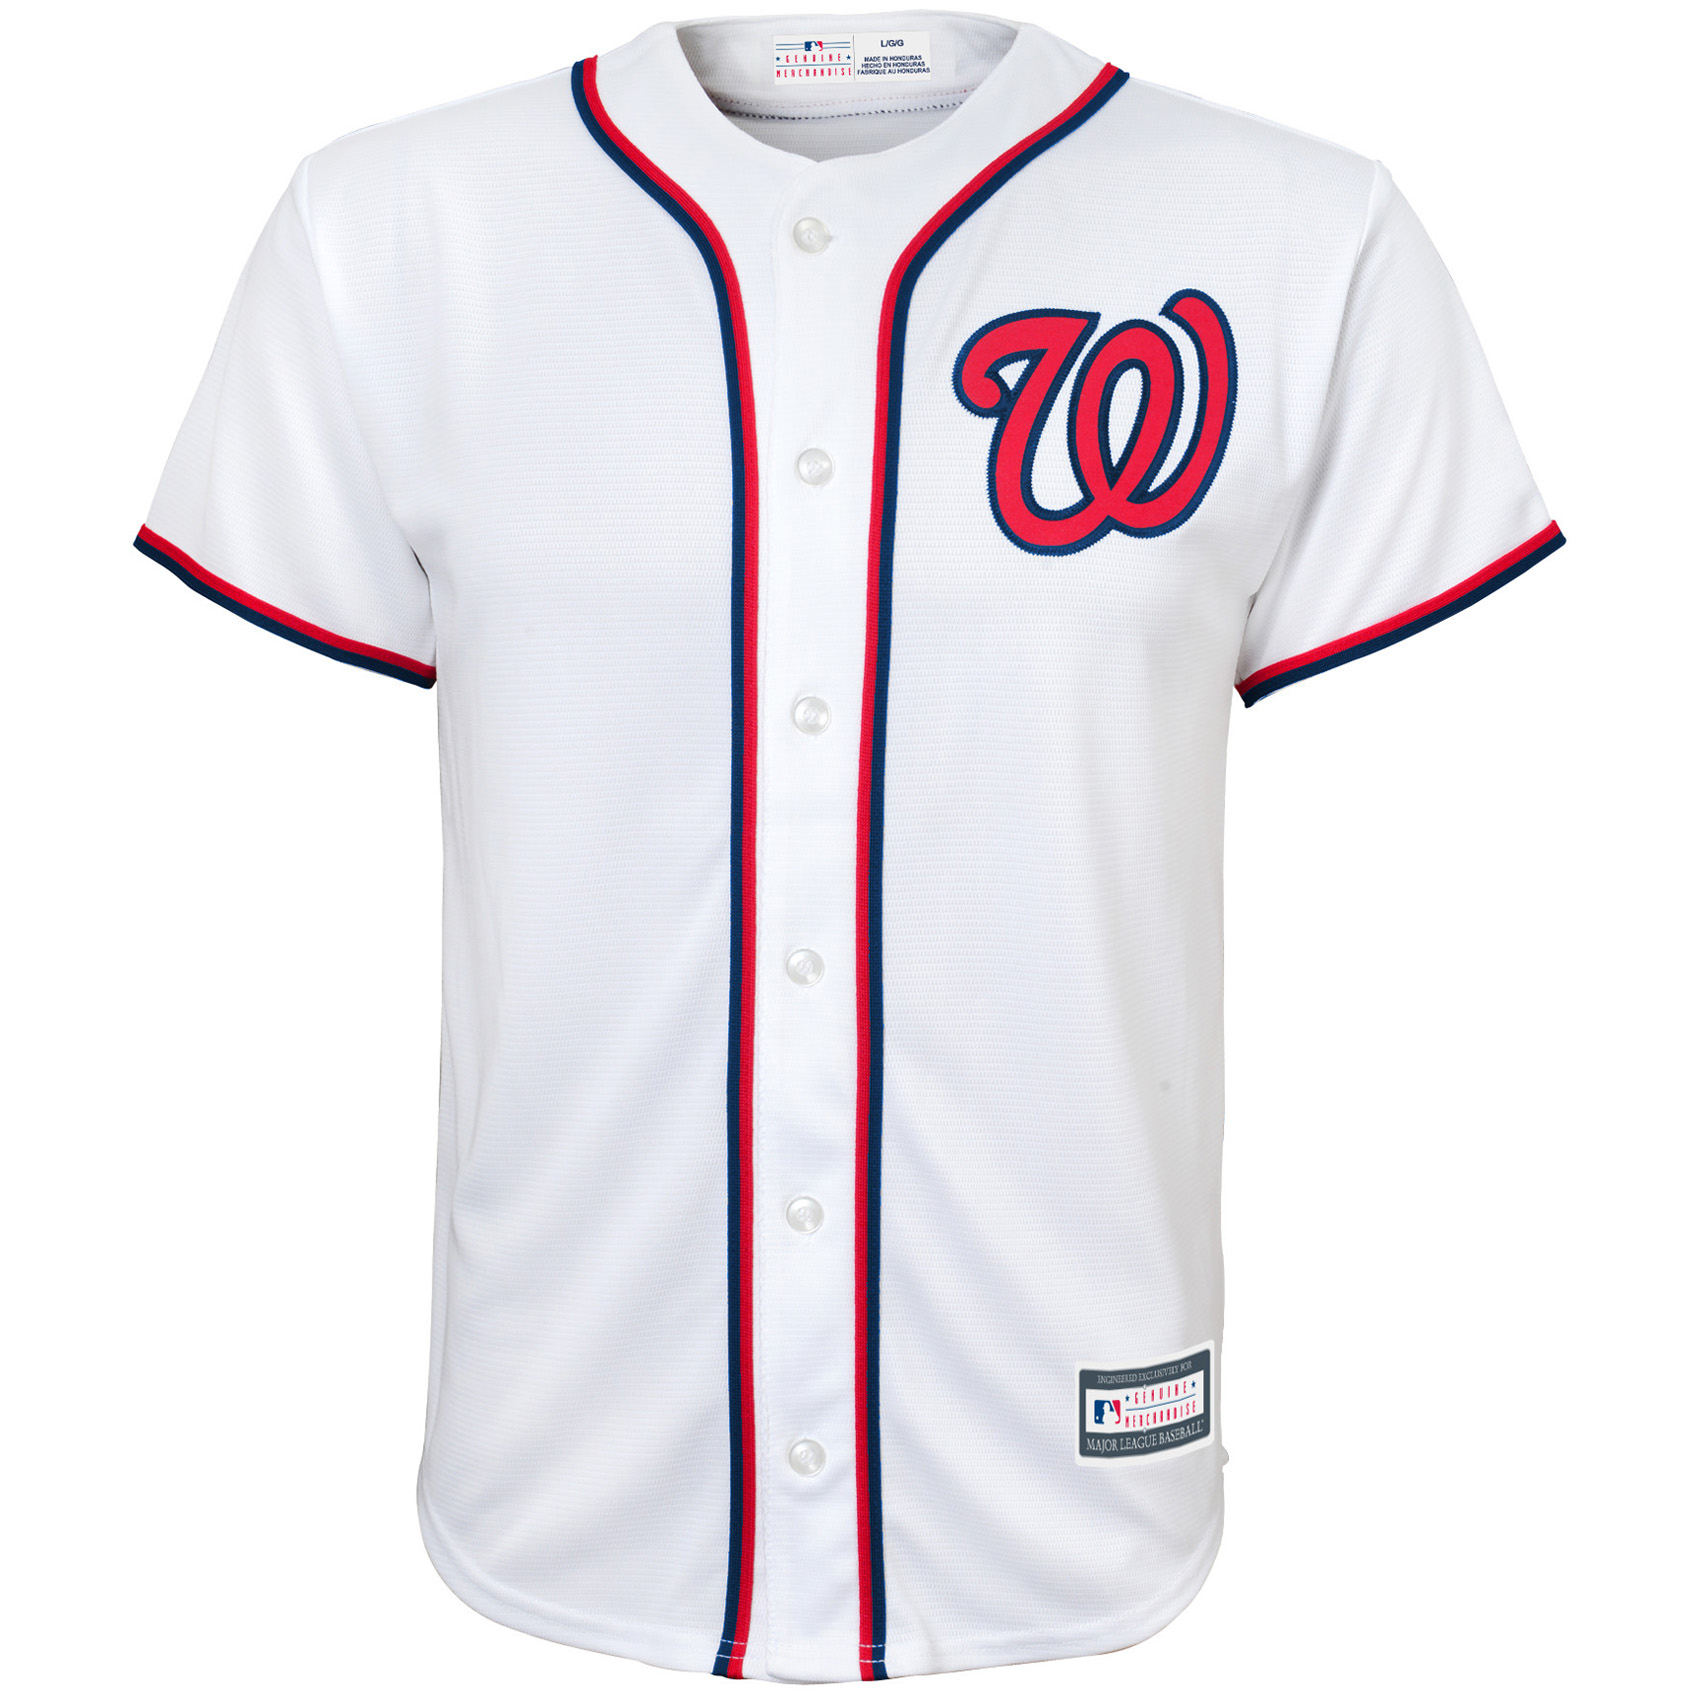 Washington Nationals Youth Replica Blank Team Jersey - White